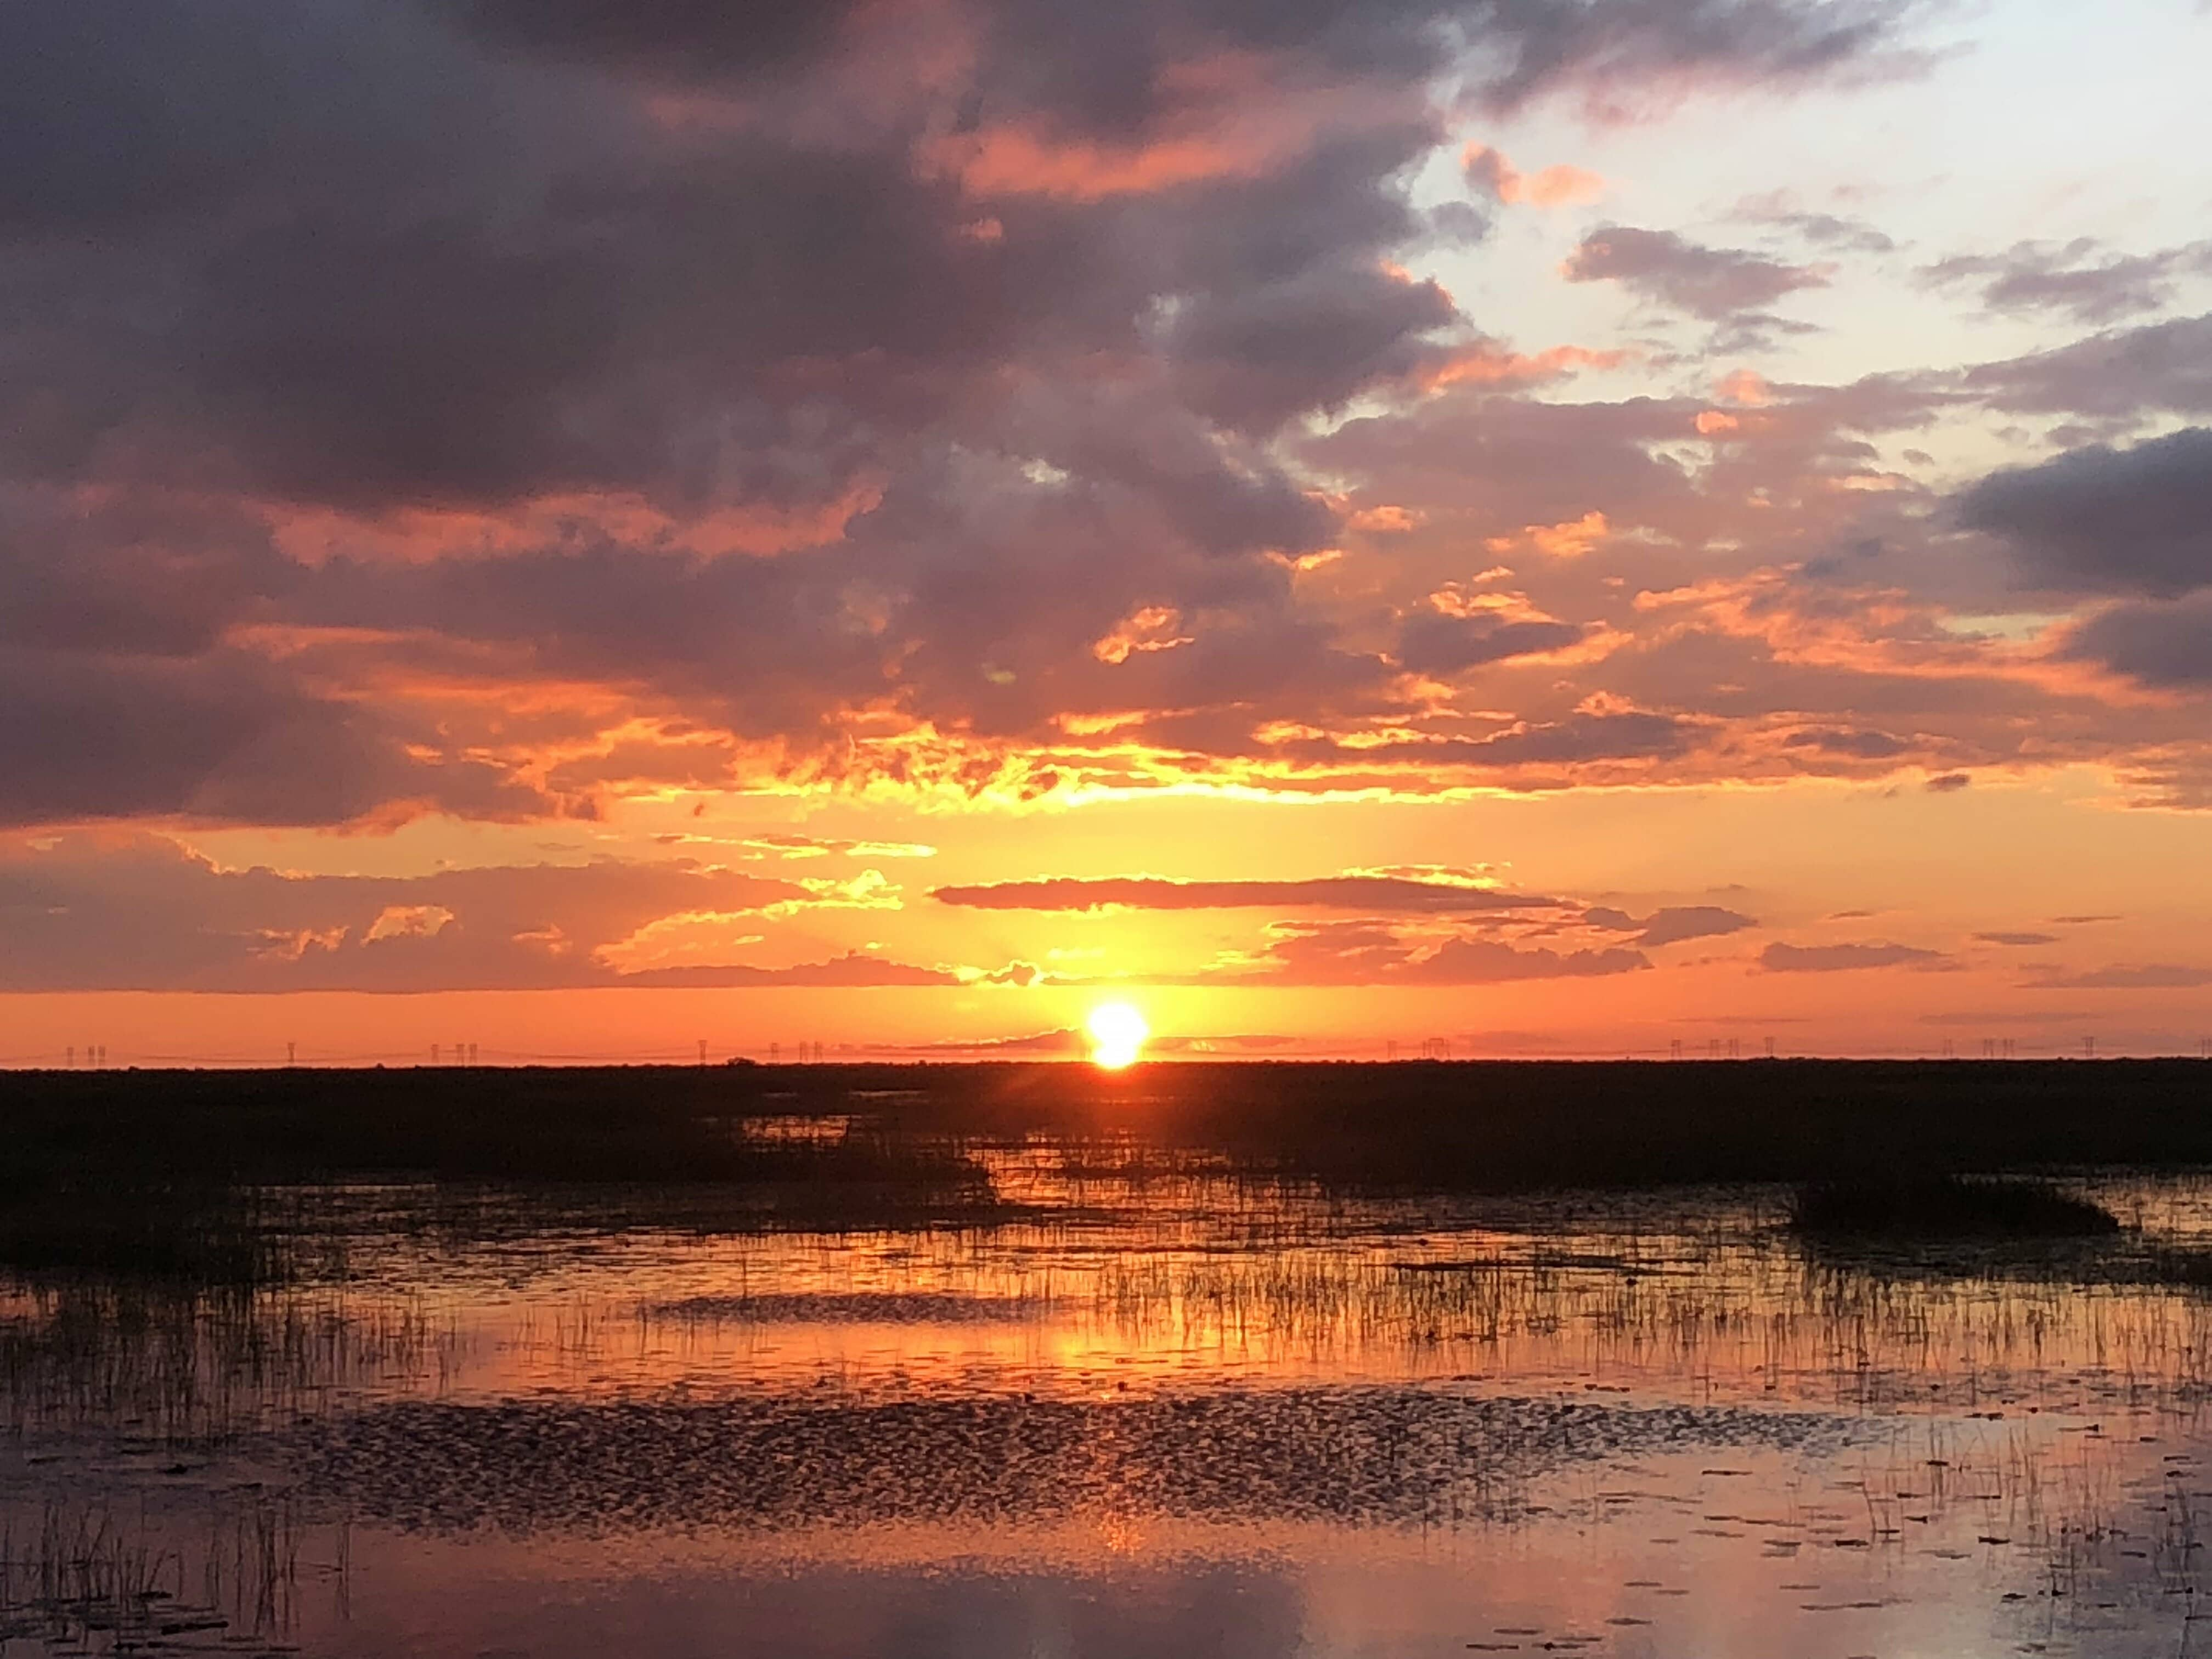 Everglades Sunset Airboat Tours in Fort Lauderdale, FL.